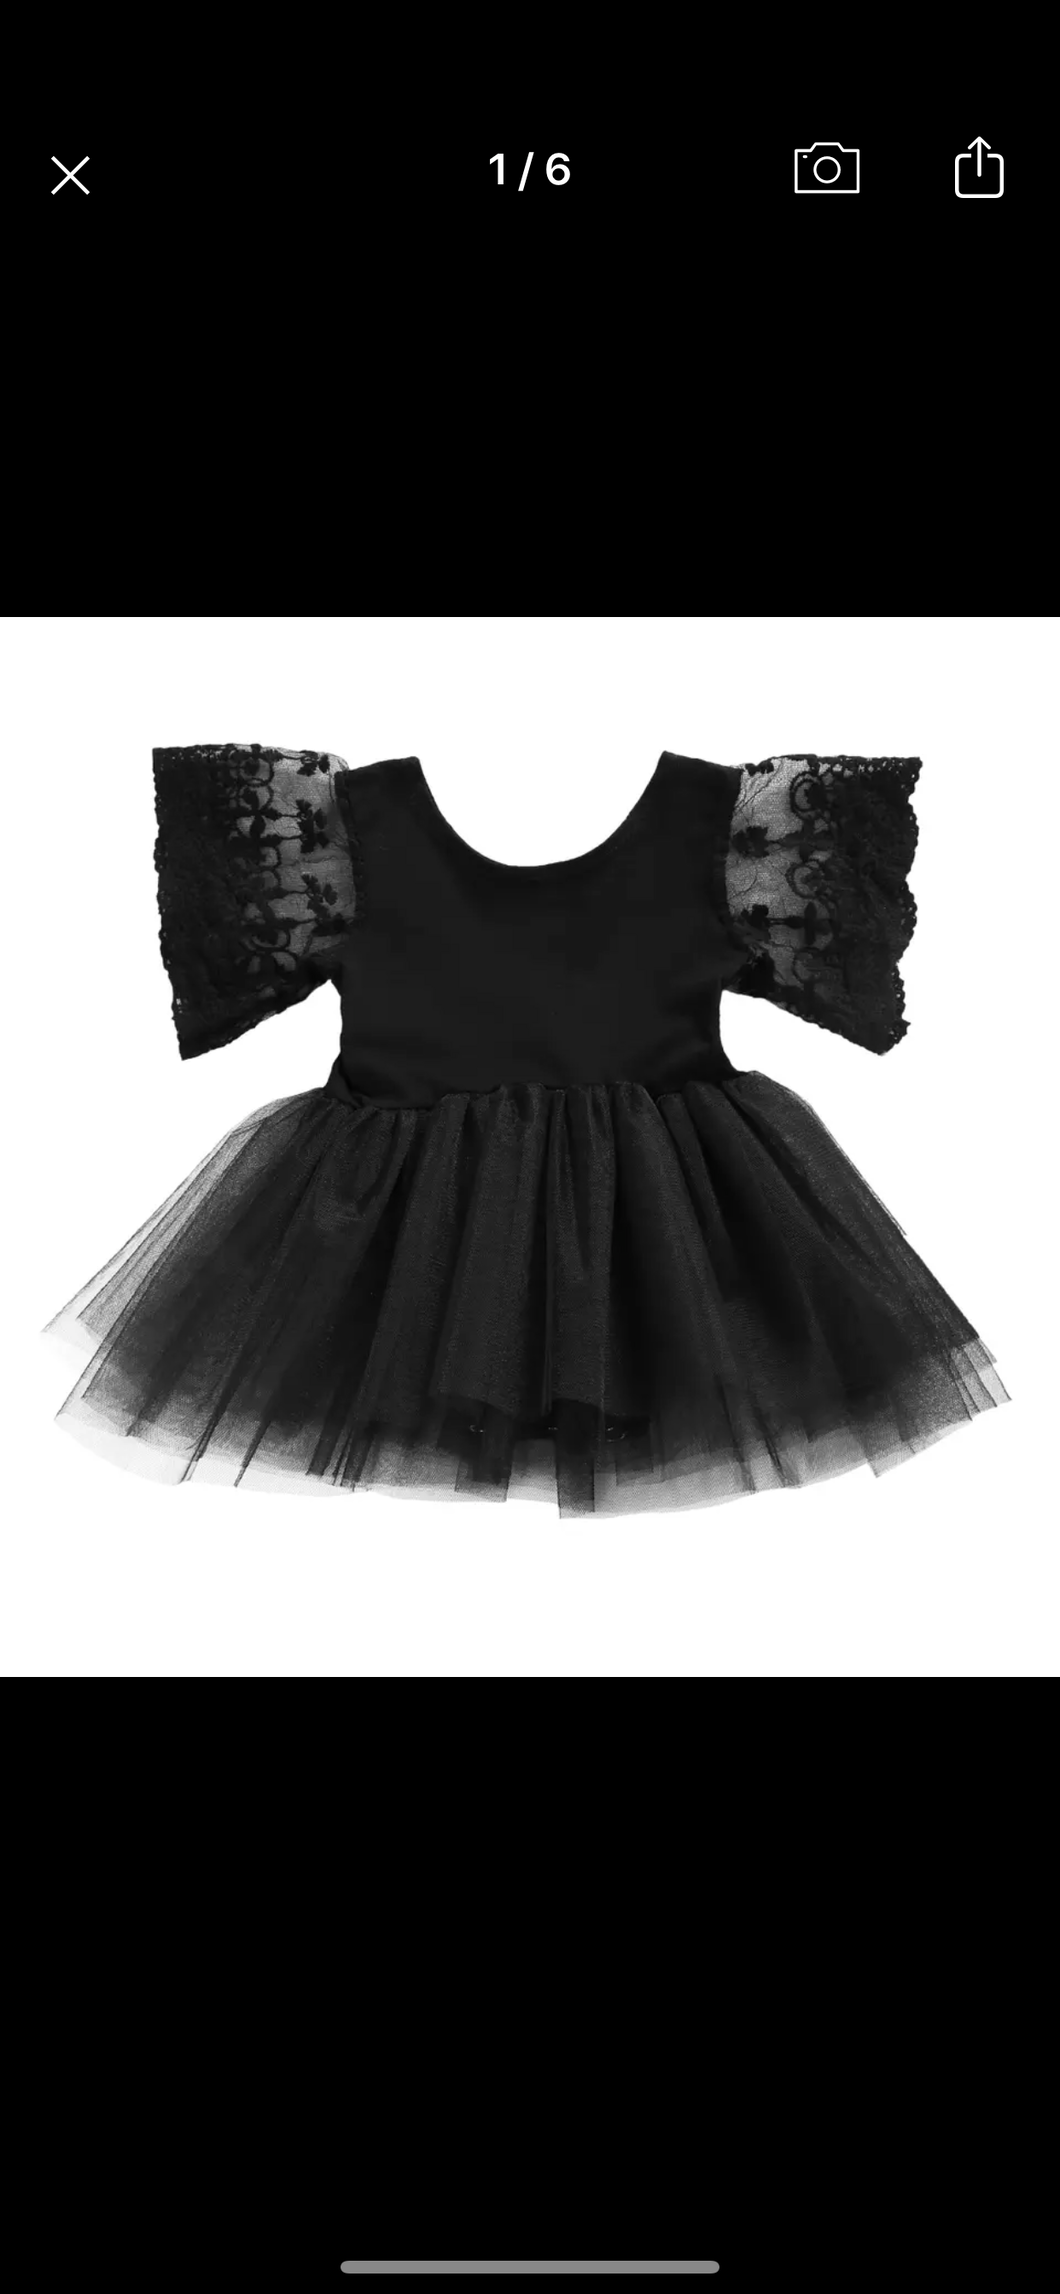 Black Lace Tutu Dress